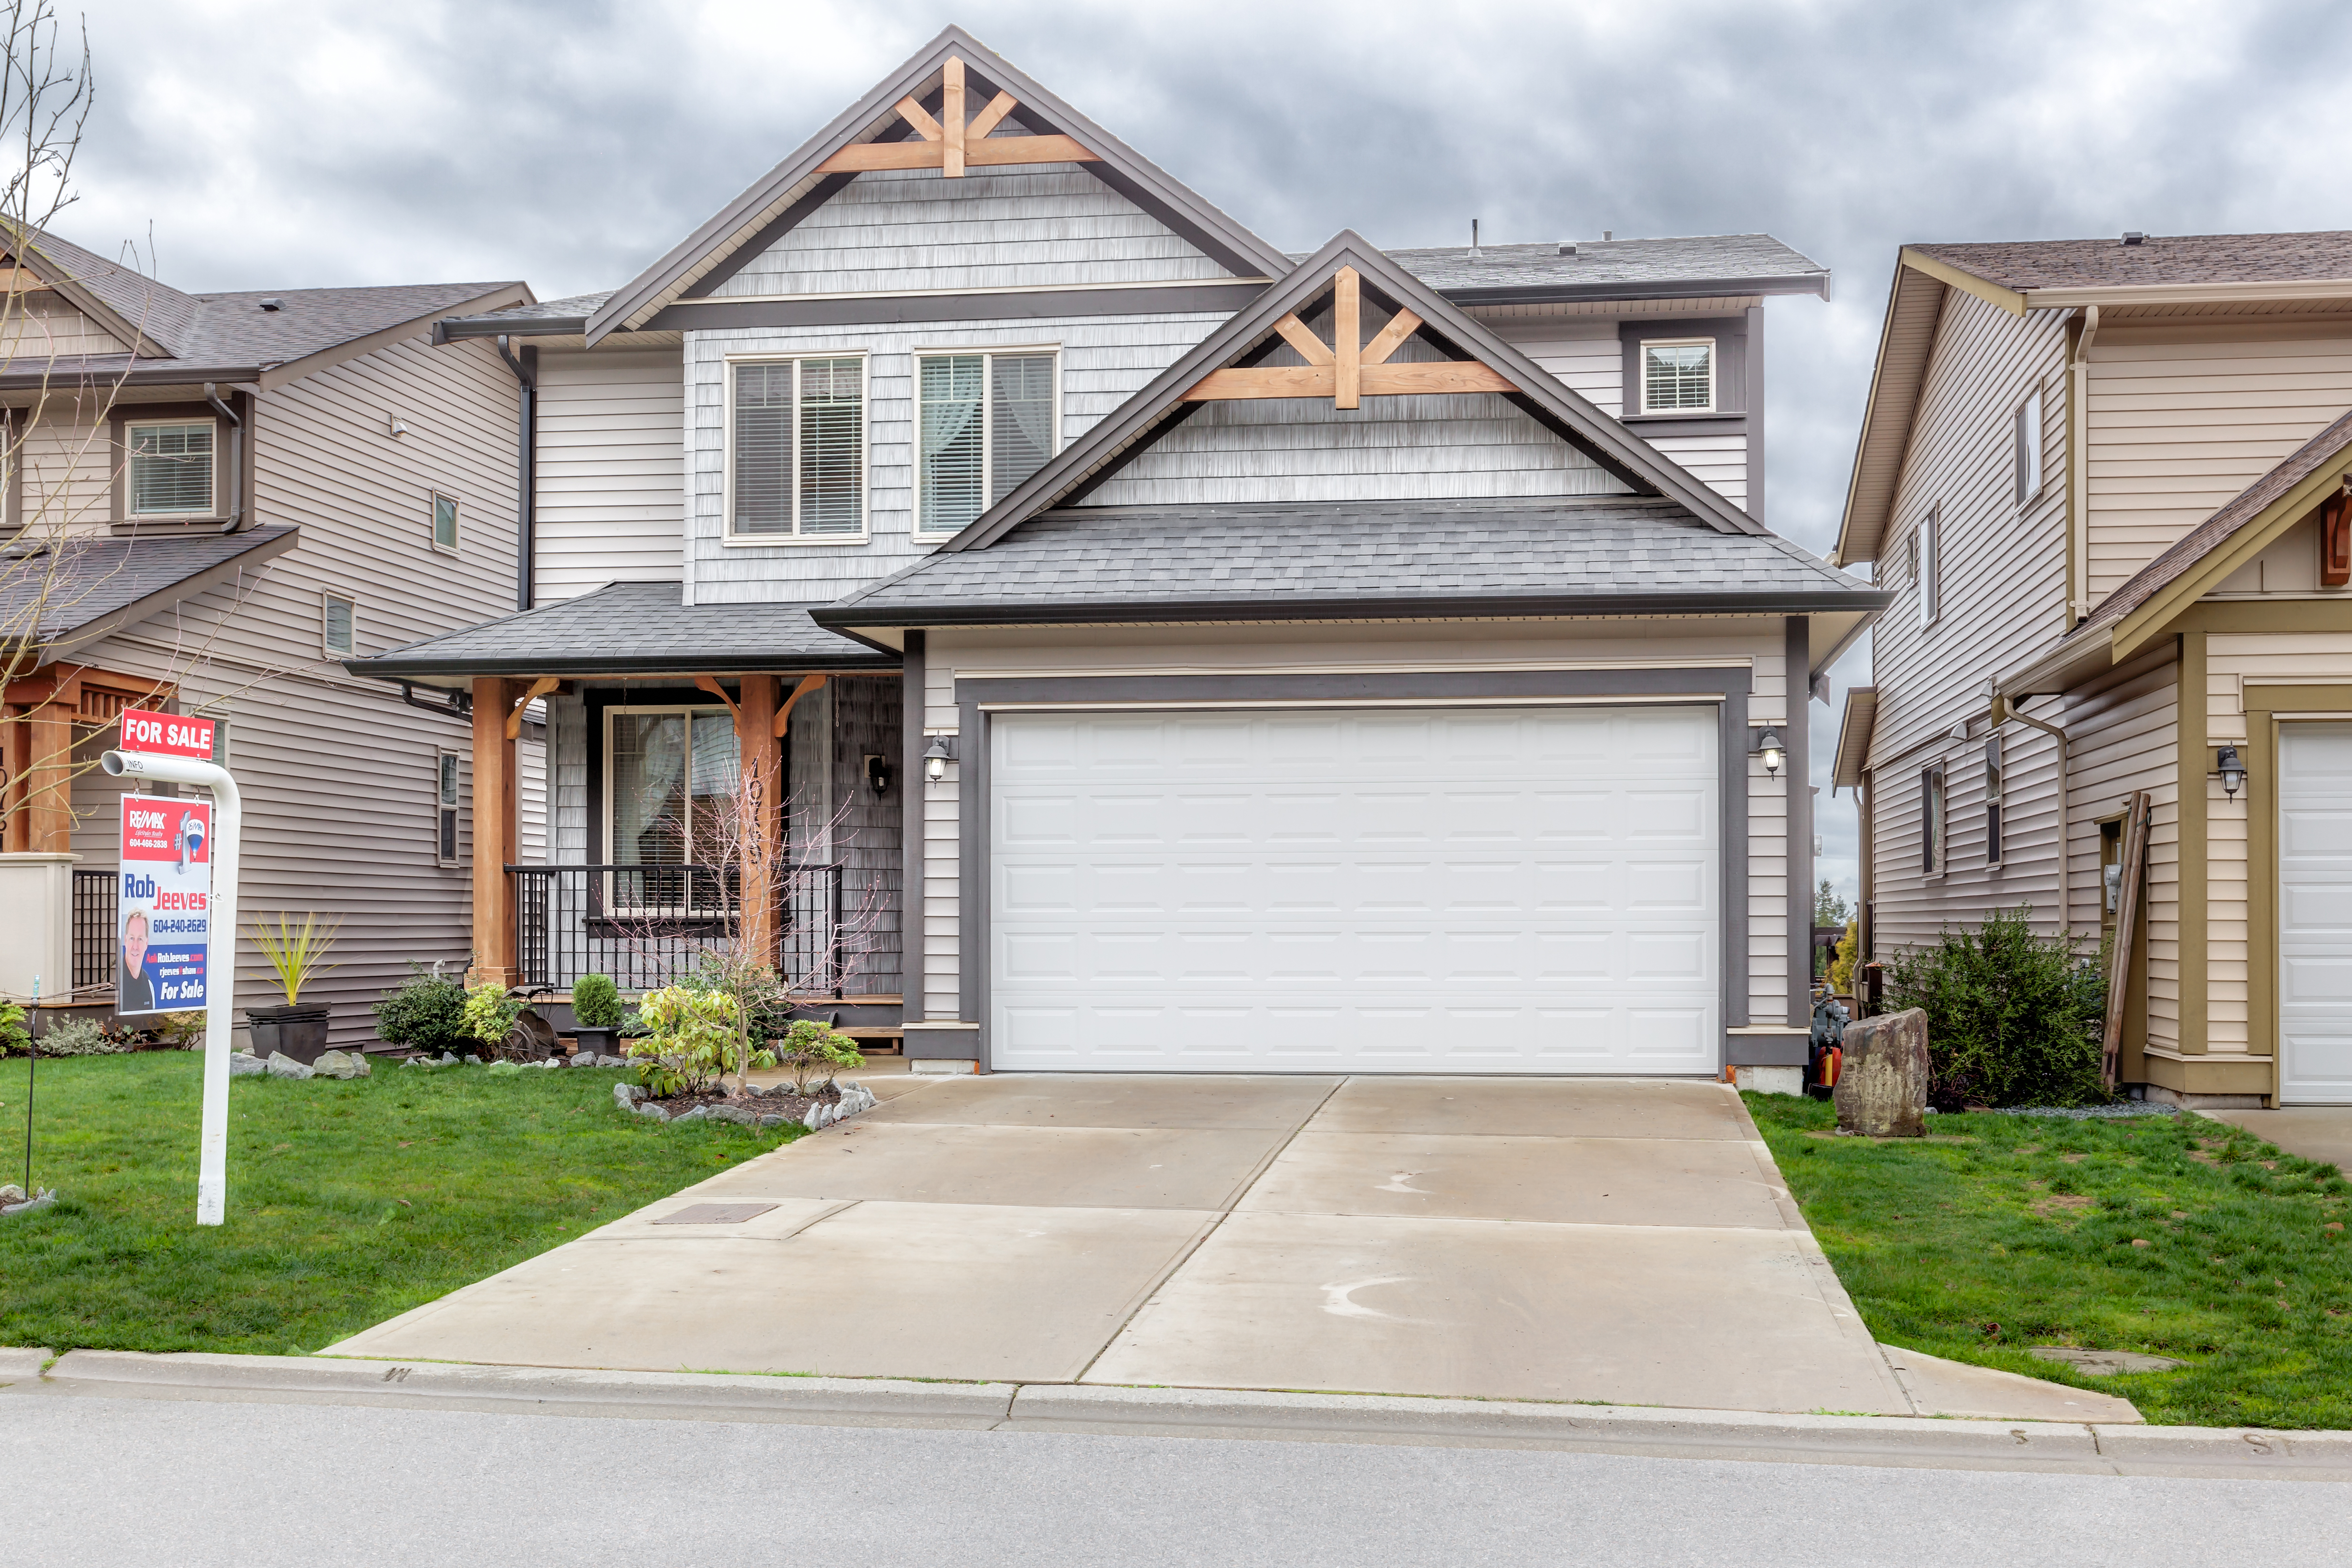 Wow beautiful 2 story home with basement rob jeeves for Two story house with basement